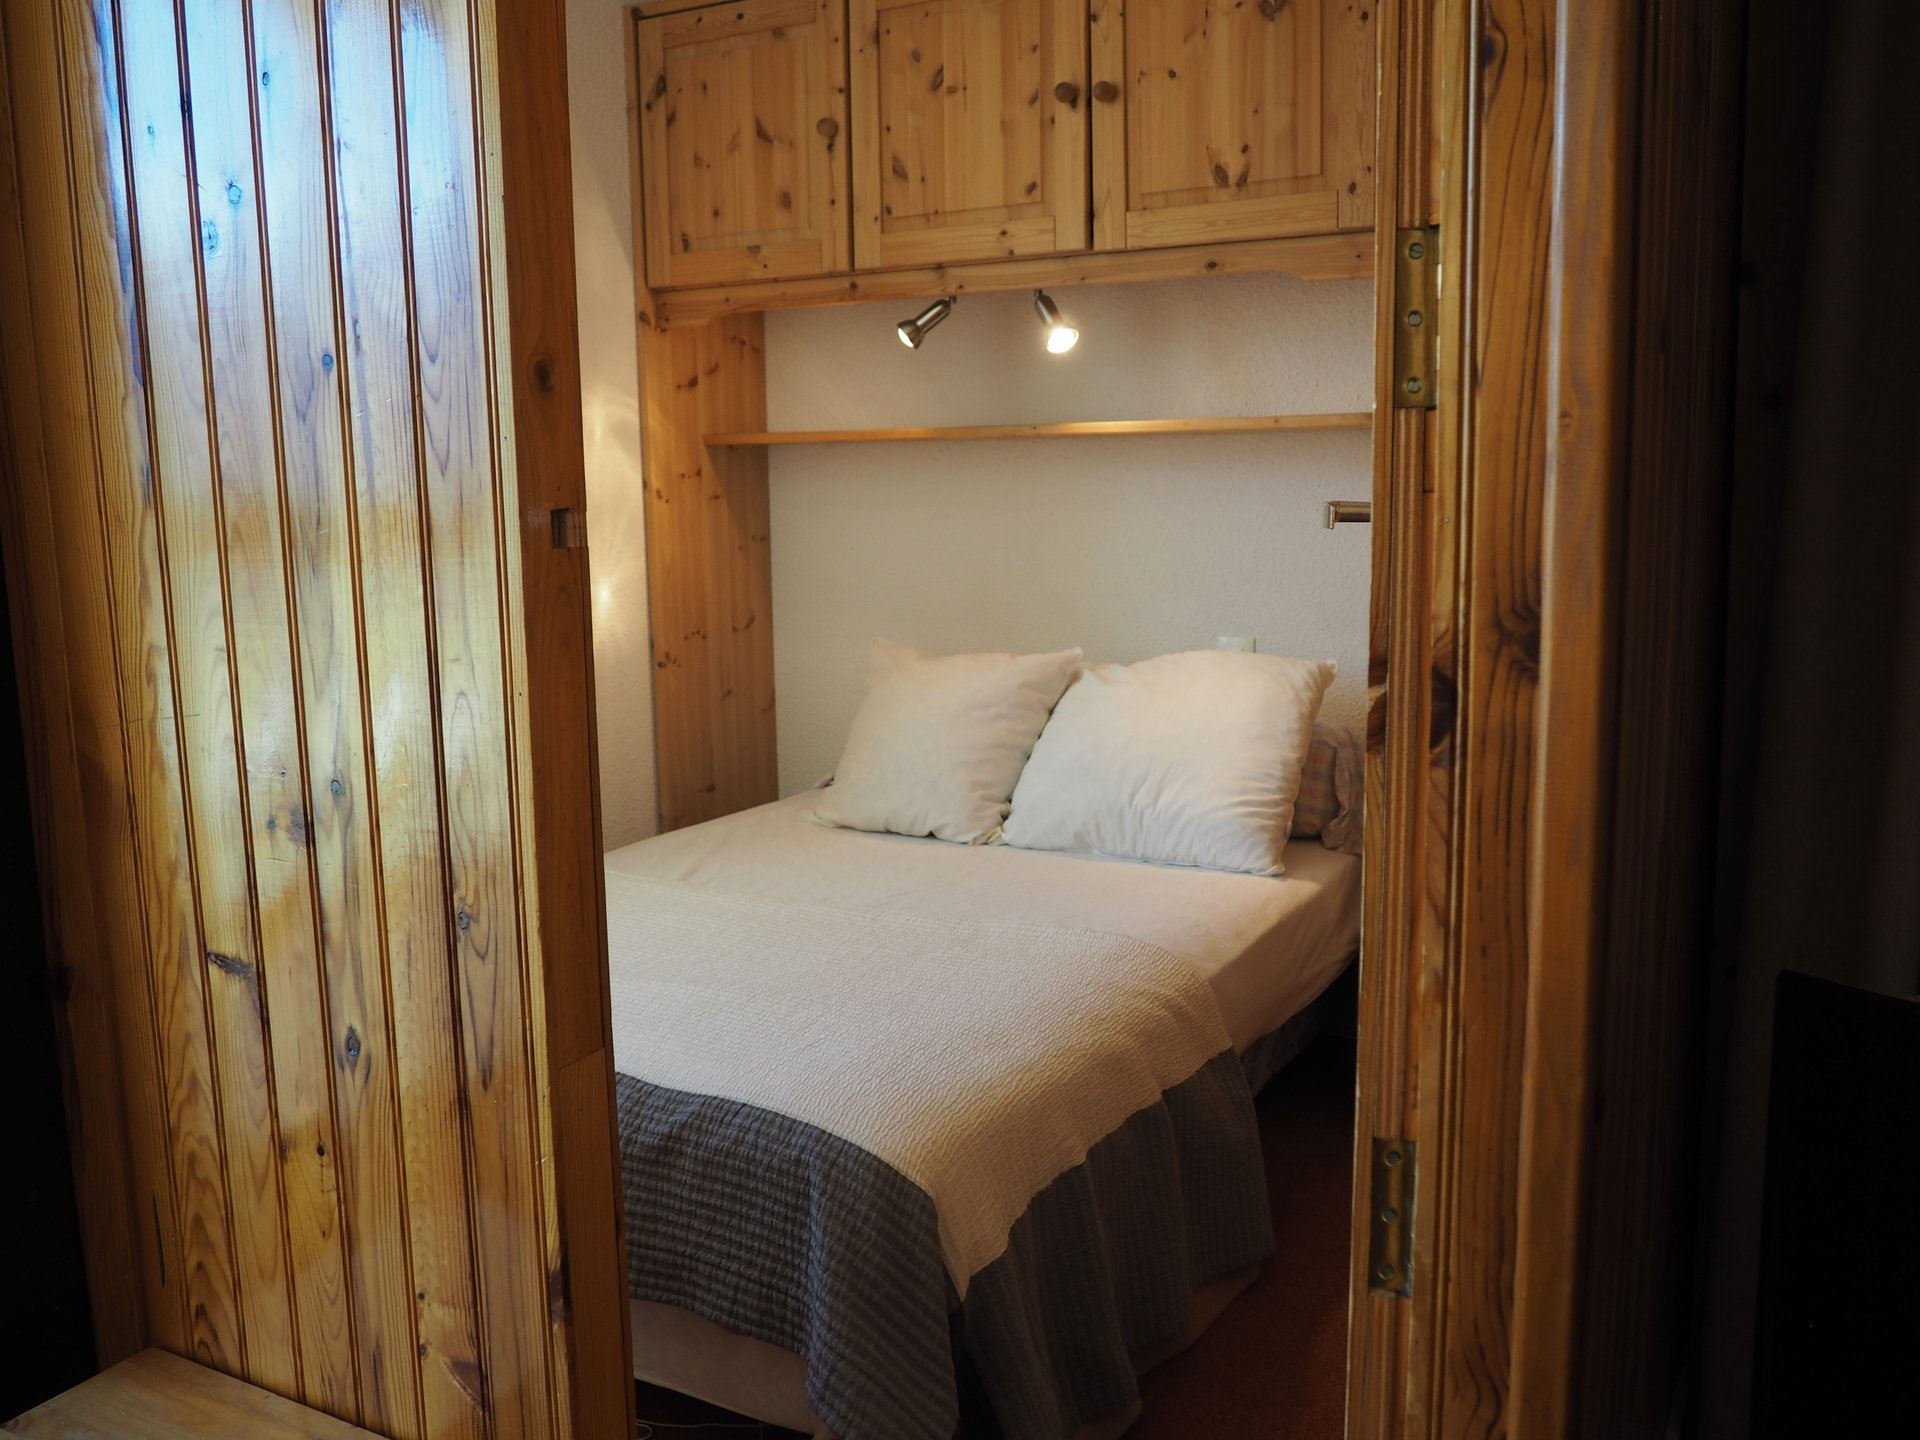 2 Rooms 5 Pers ski-in ski-out / ARMOISE 11